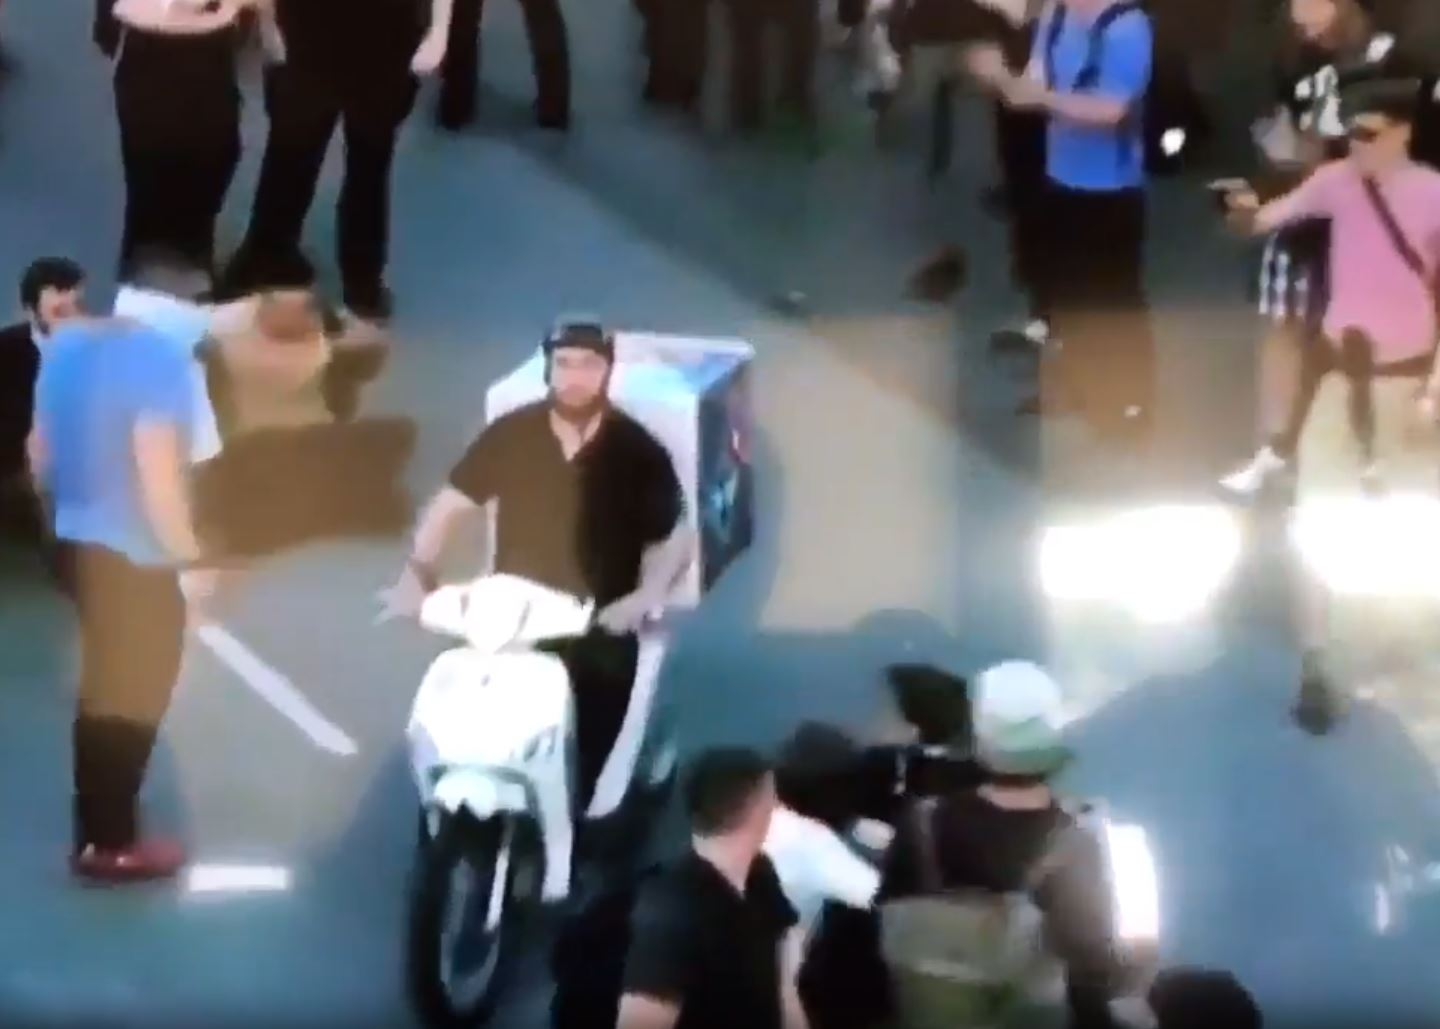 Pizza delivery rider expertly navigates G20 protesters clashing with police